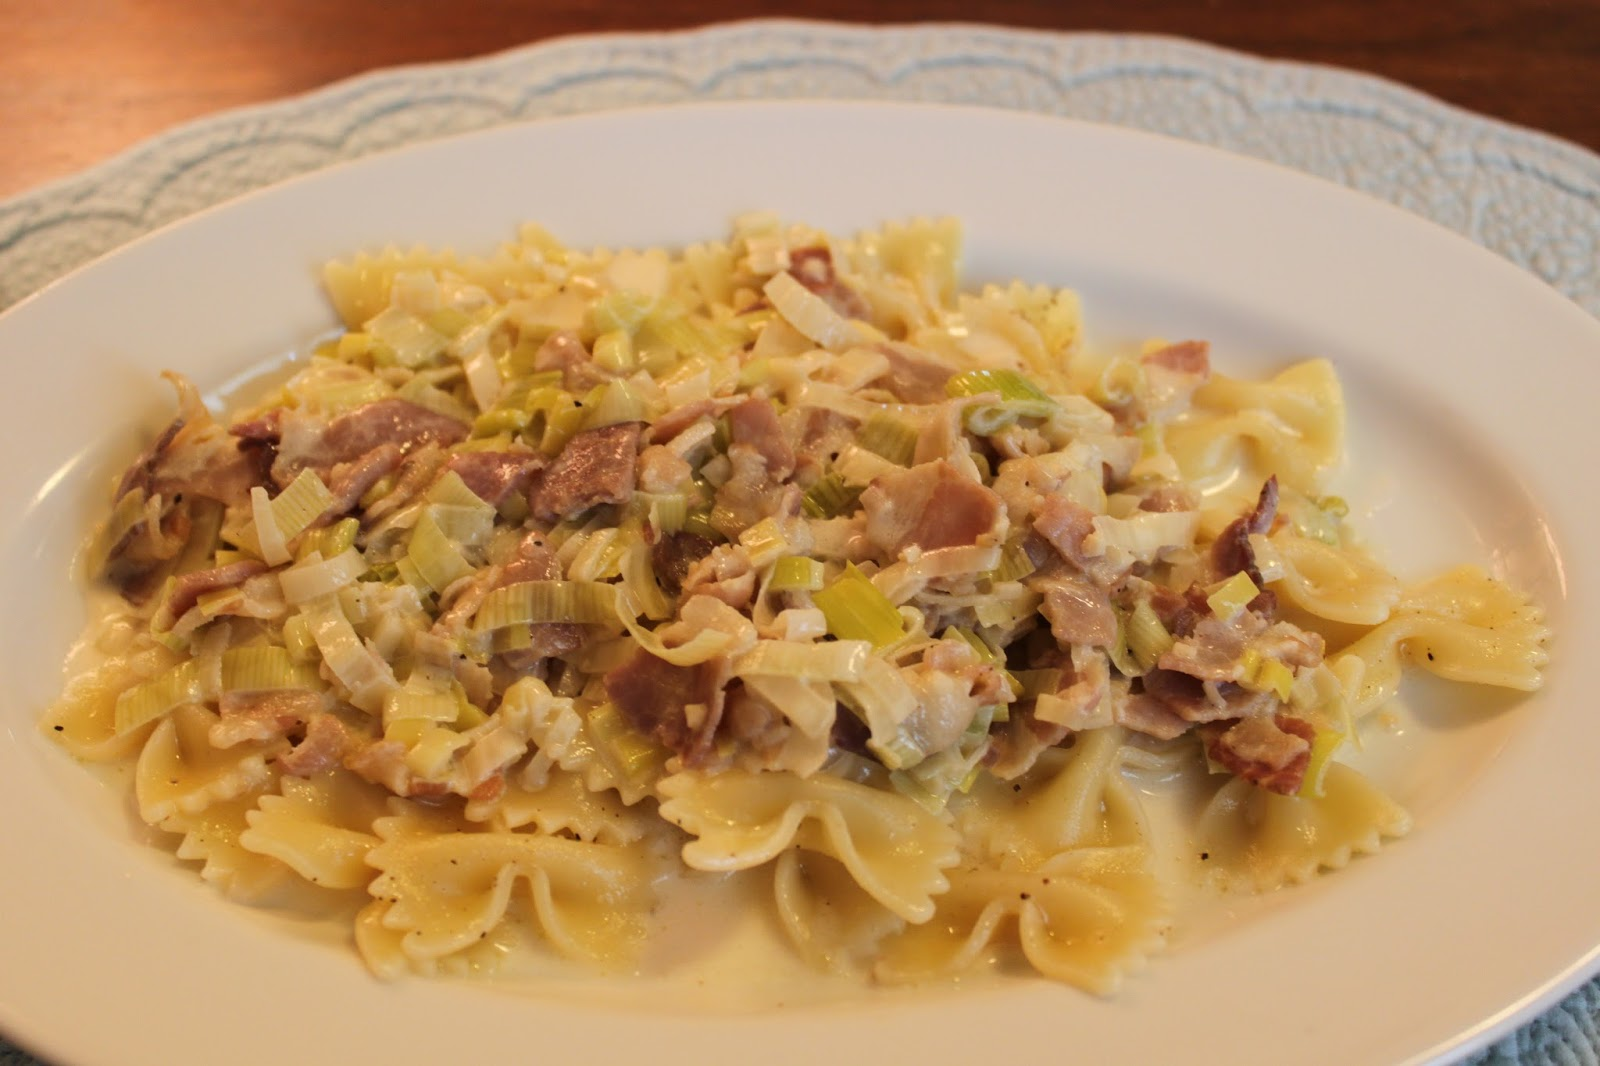 FROM A WRITER'S KITCHEN: Pasta with Pancetta and Leeks